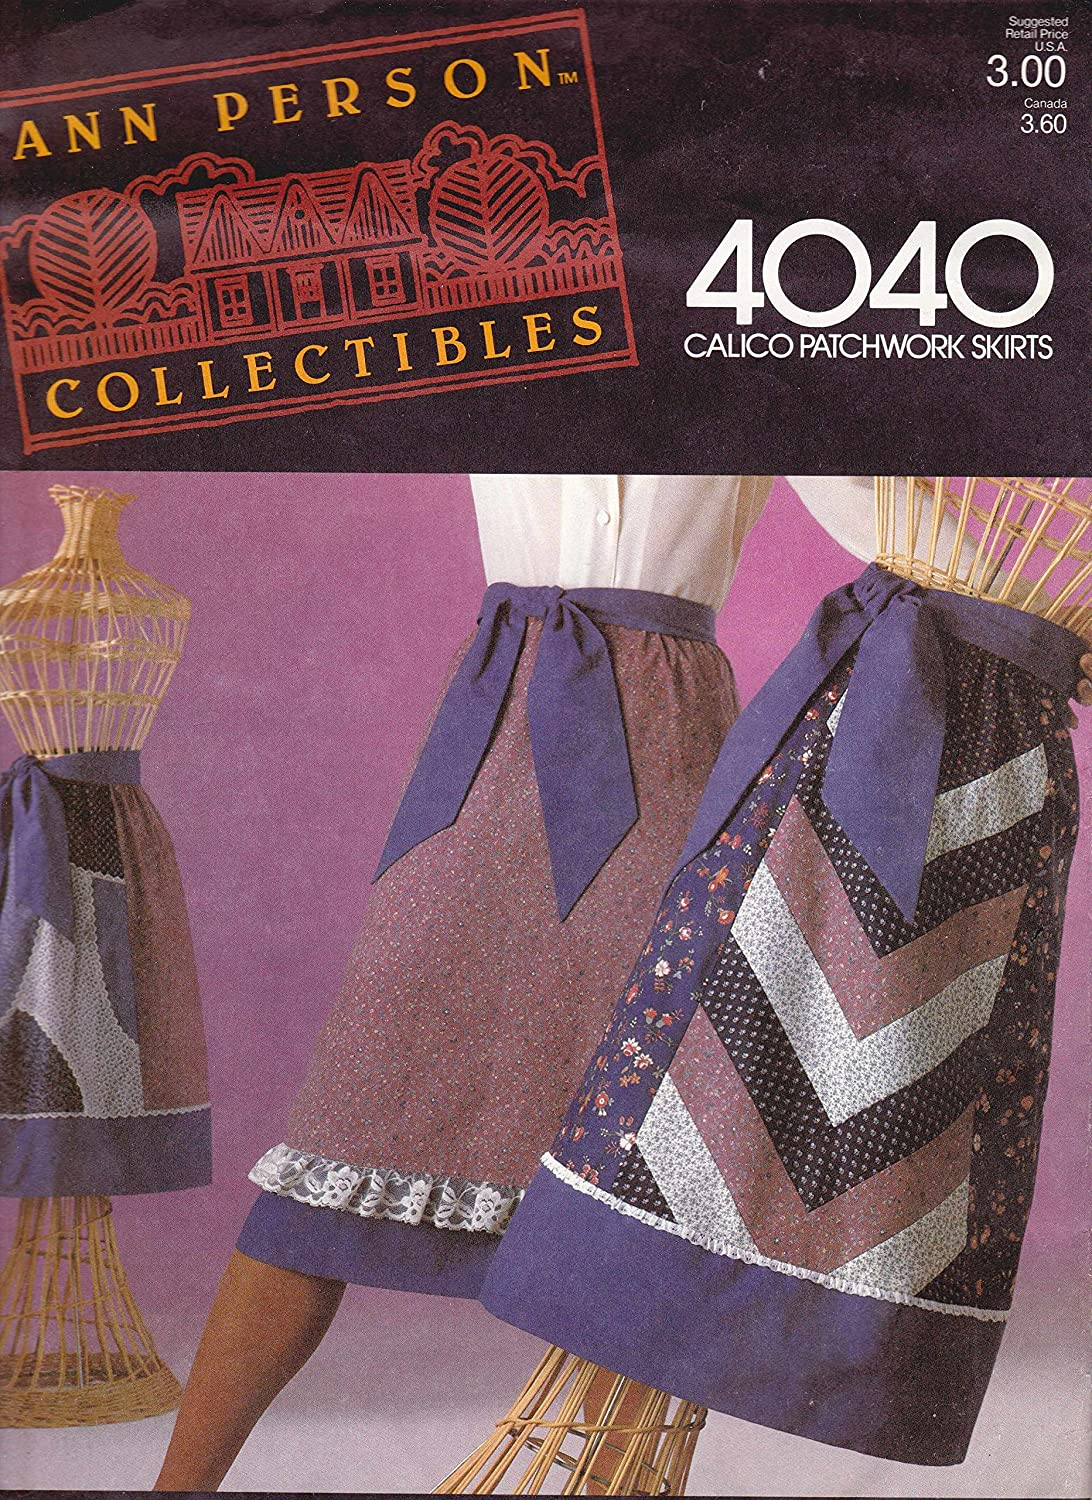 Ann Person Collectibles Stretch & Sew Pattern 4040 ~ Calico Patchwork A-Line Skirts ~ Small ~ Medium ~ Large by Stretch & Sew   B00CCTRYT2